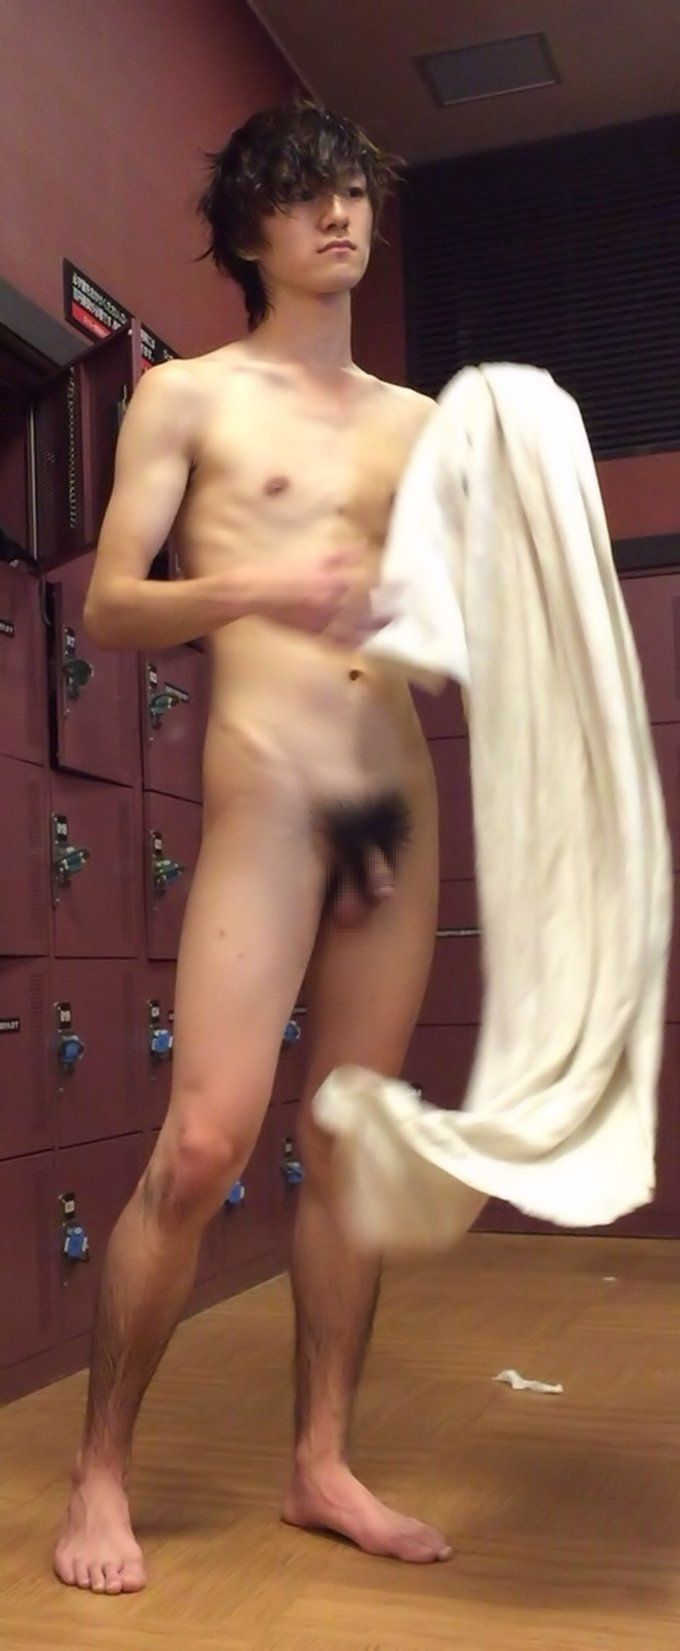 Young guys in locker room gay sex movies